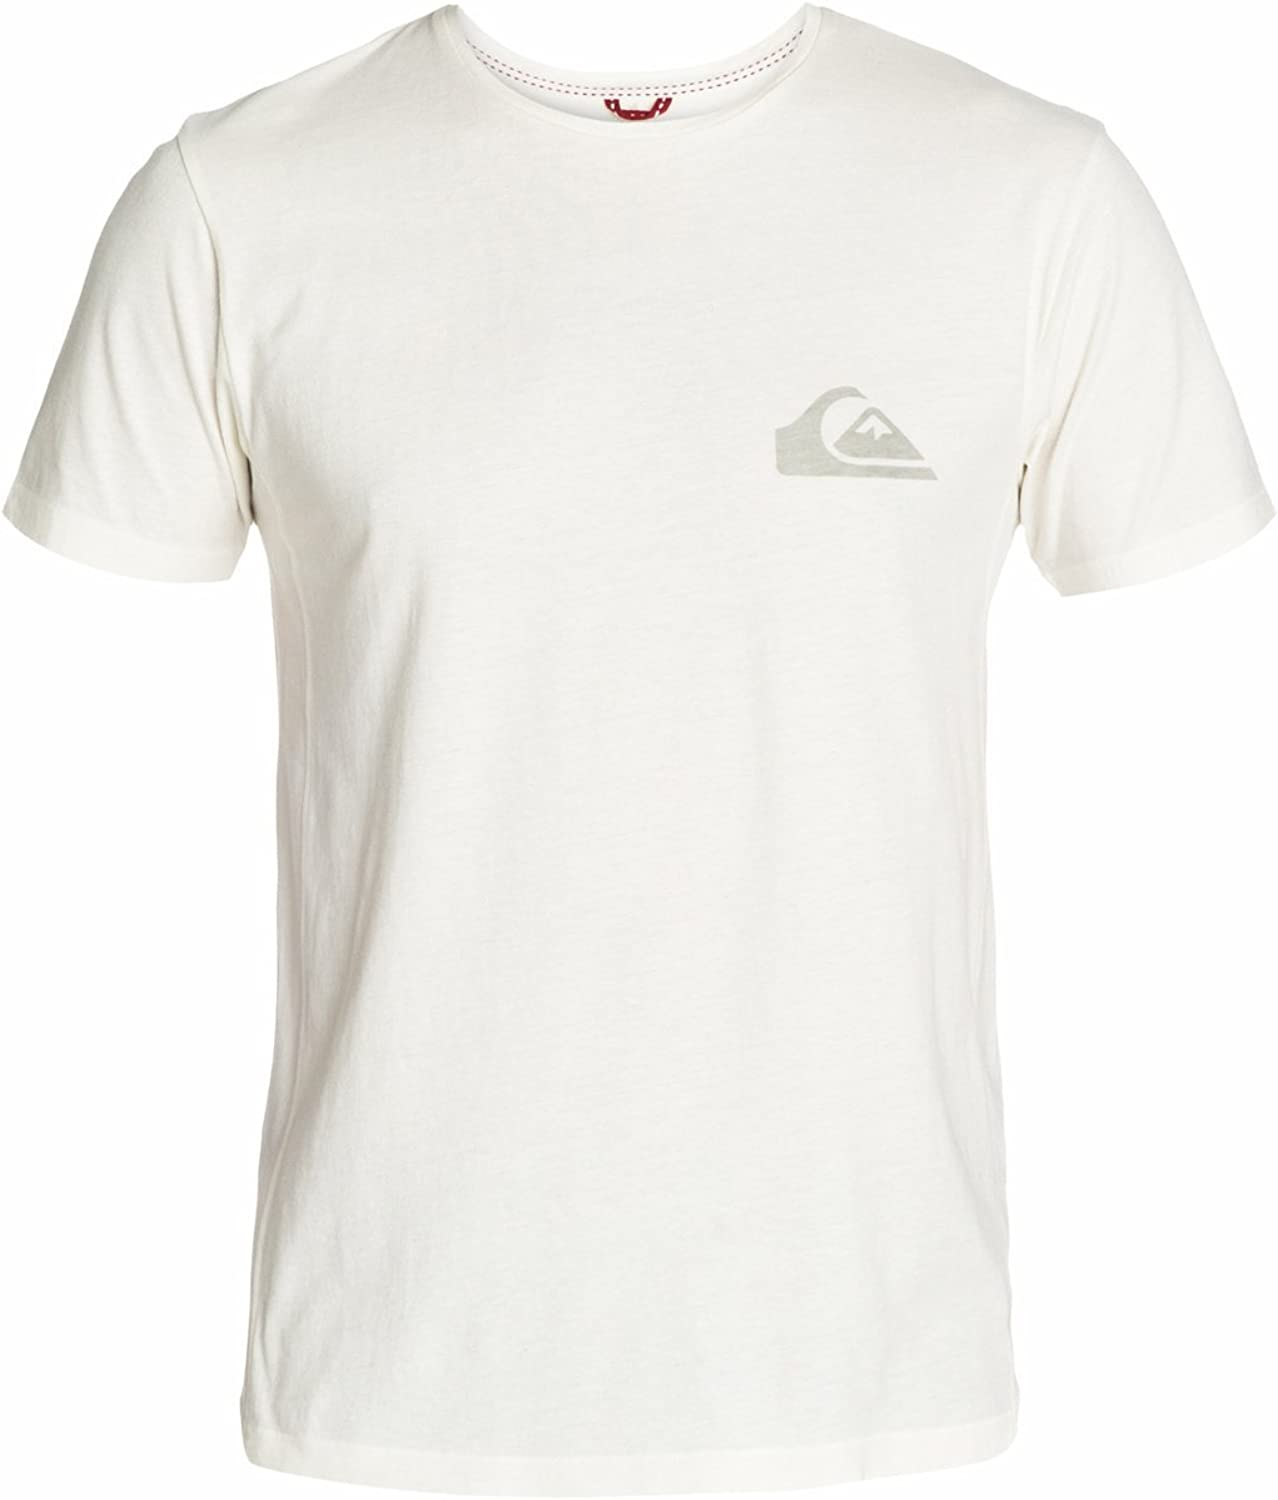 Quiksilver Mens Mo White Spring Over item handling new work one after another L Mw